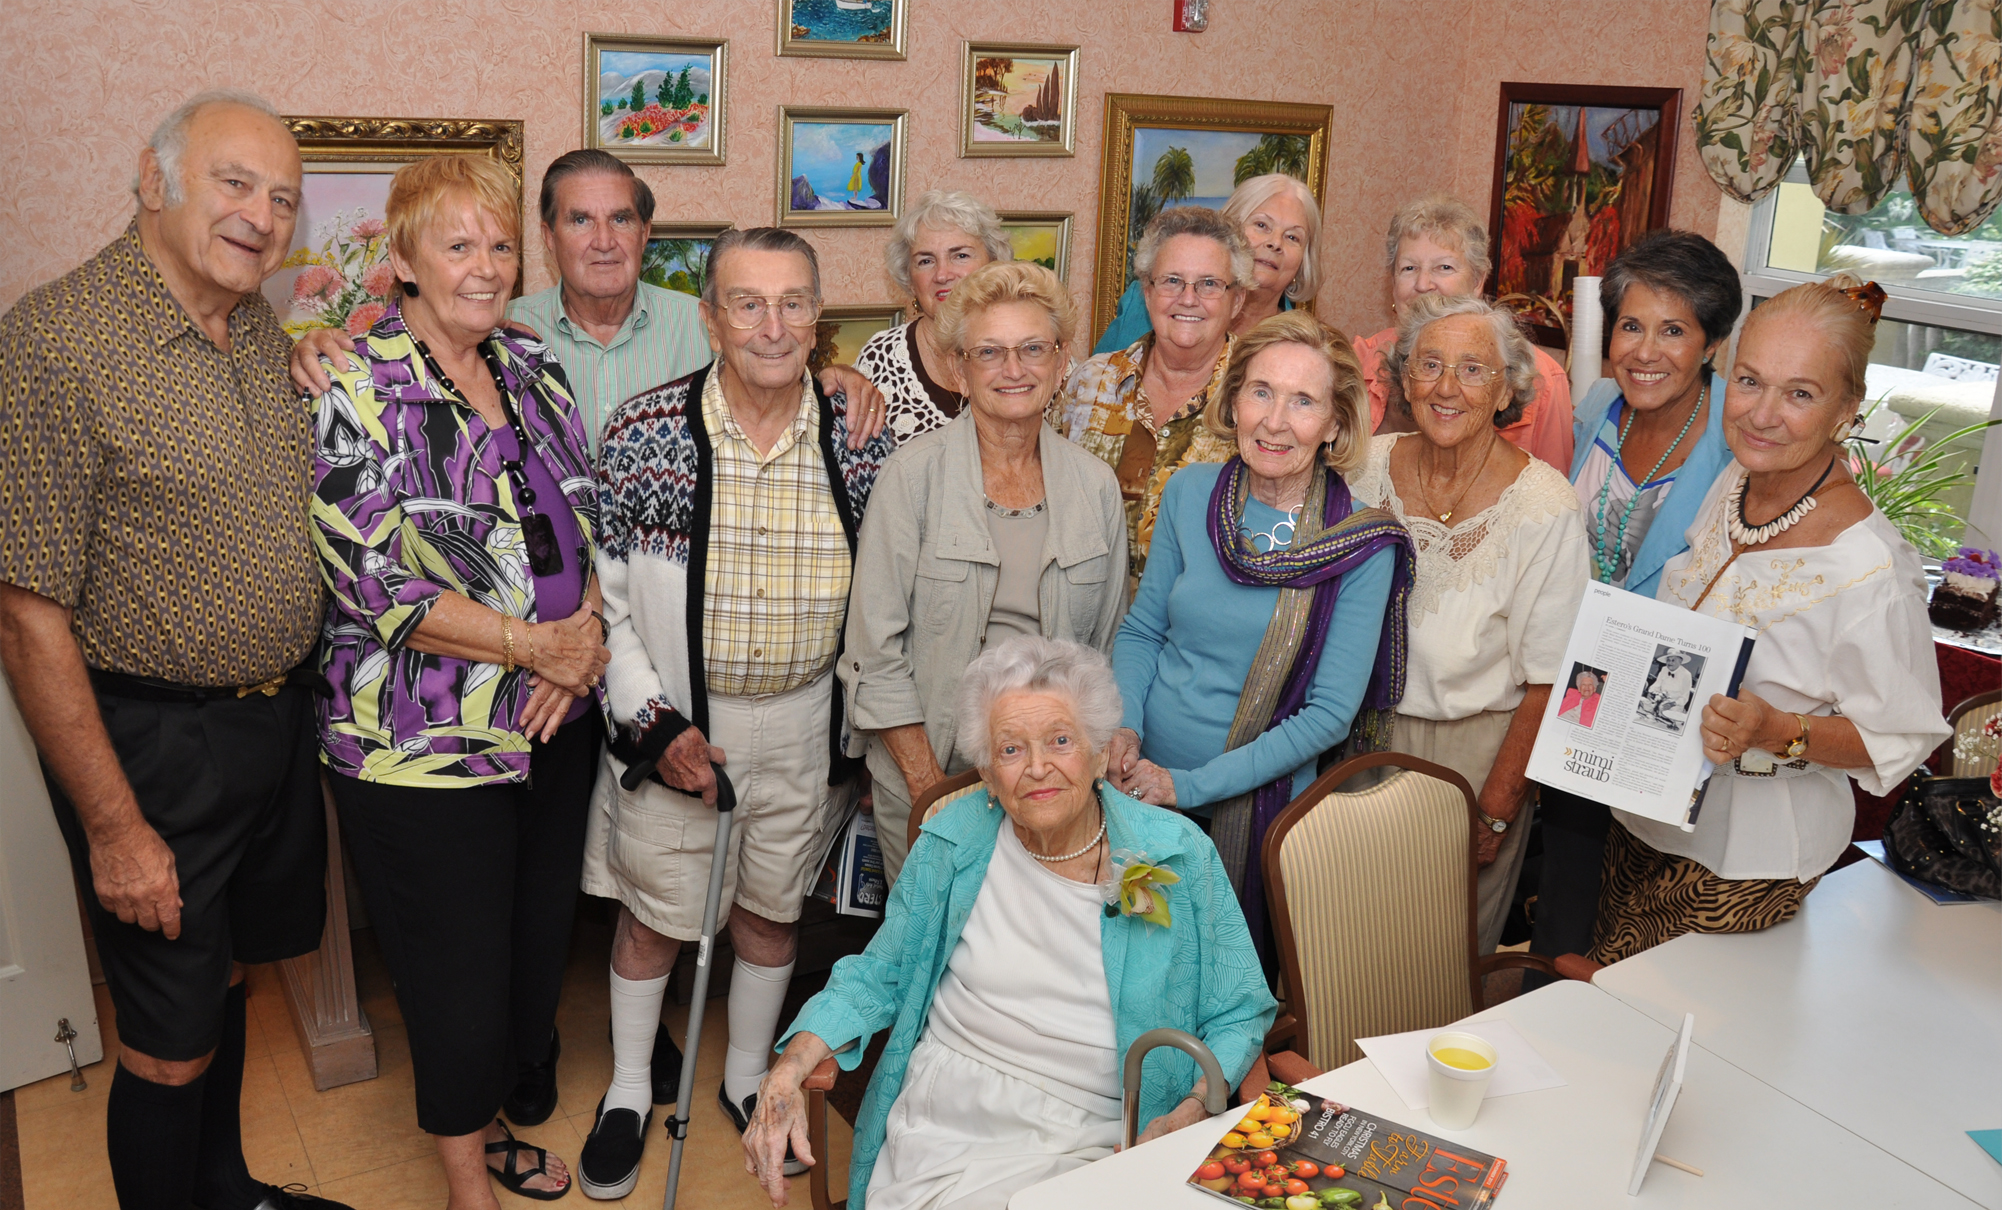 Mimi Straub's 100th Birthday